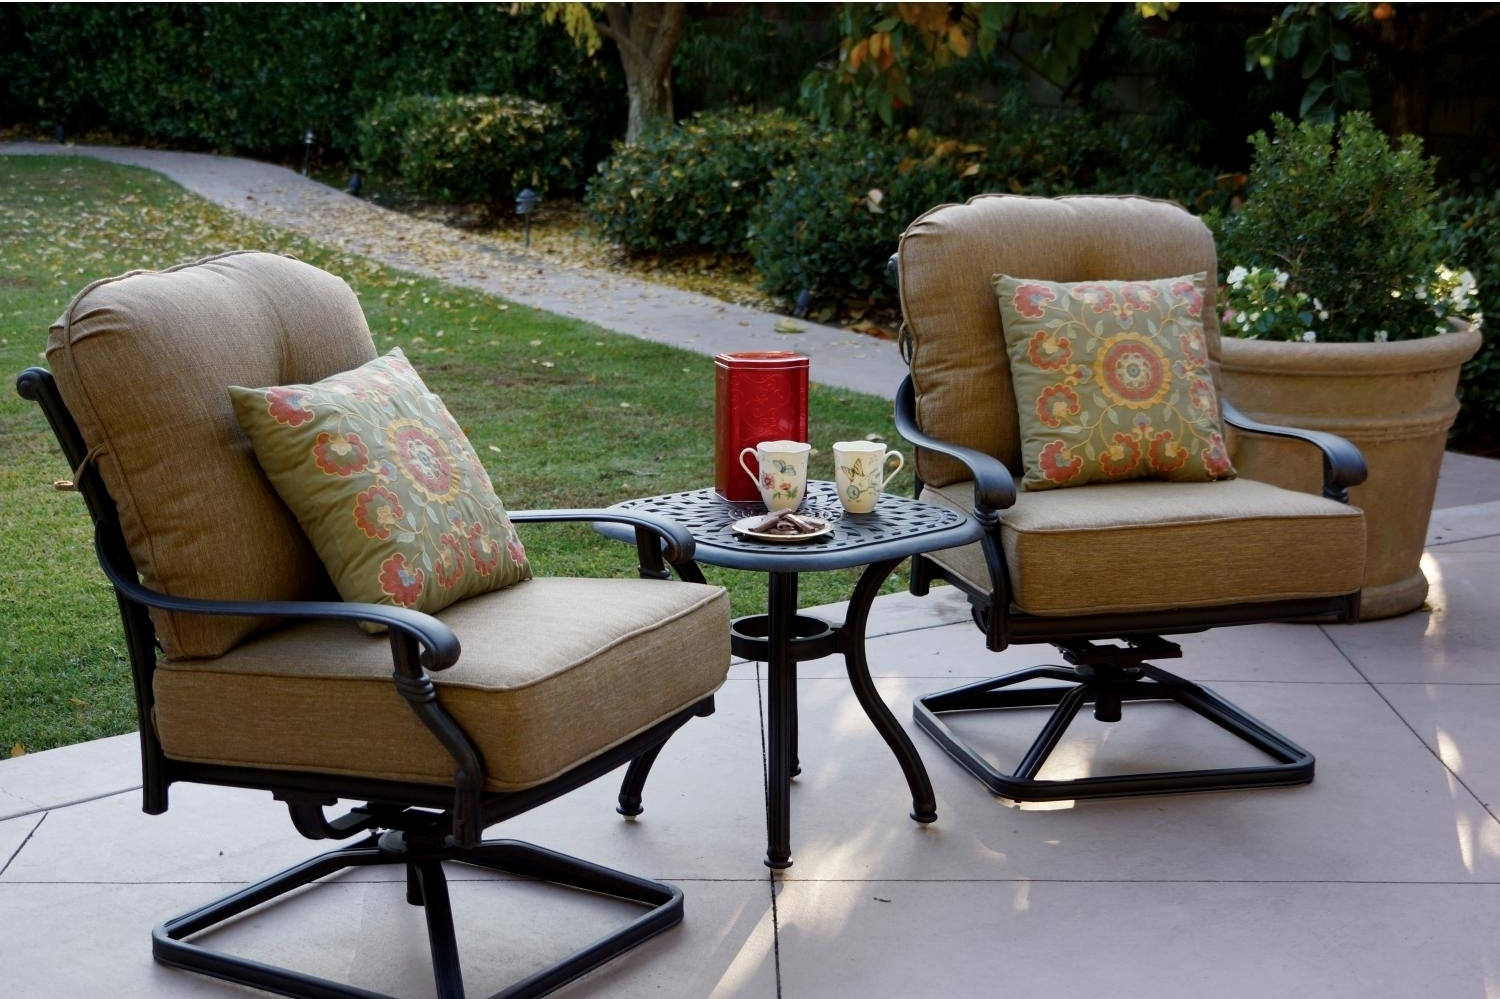 Patio Furniture Cast Aluminum Deep Seating Rocker Set Swivel Club Inside Patio Rocking Chairs Sets (View 9 of 15)